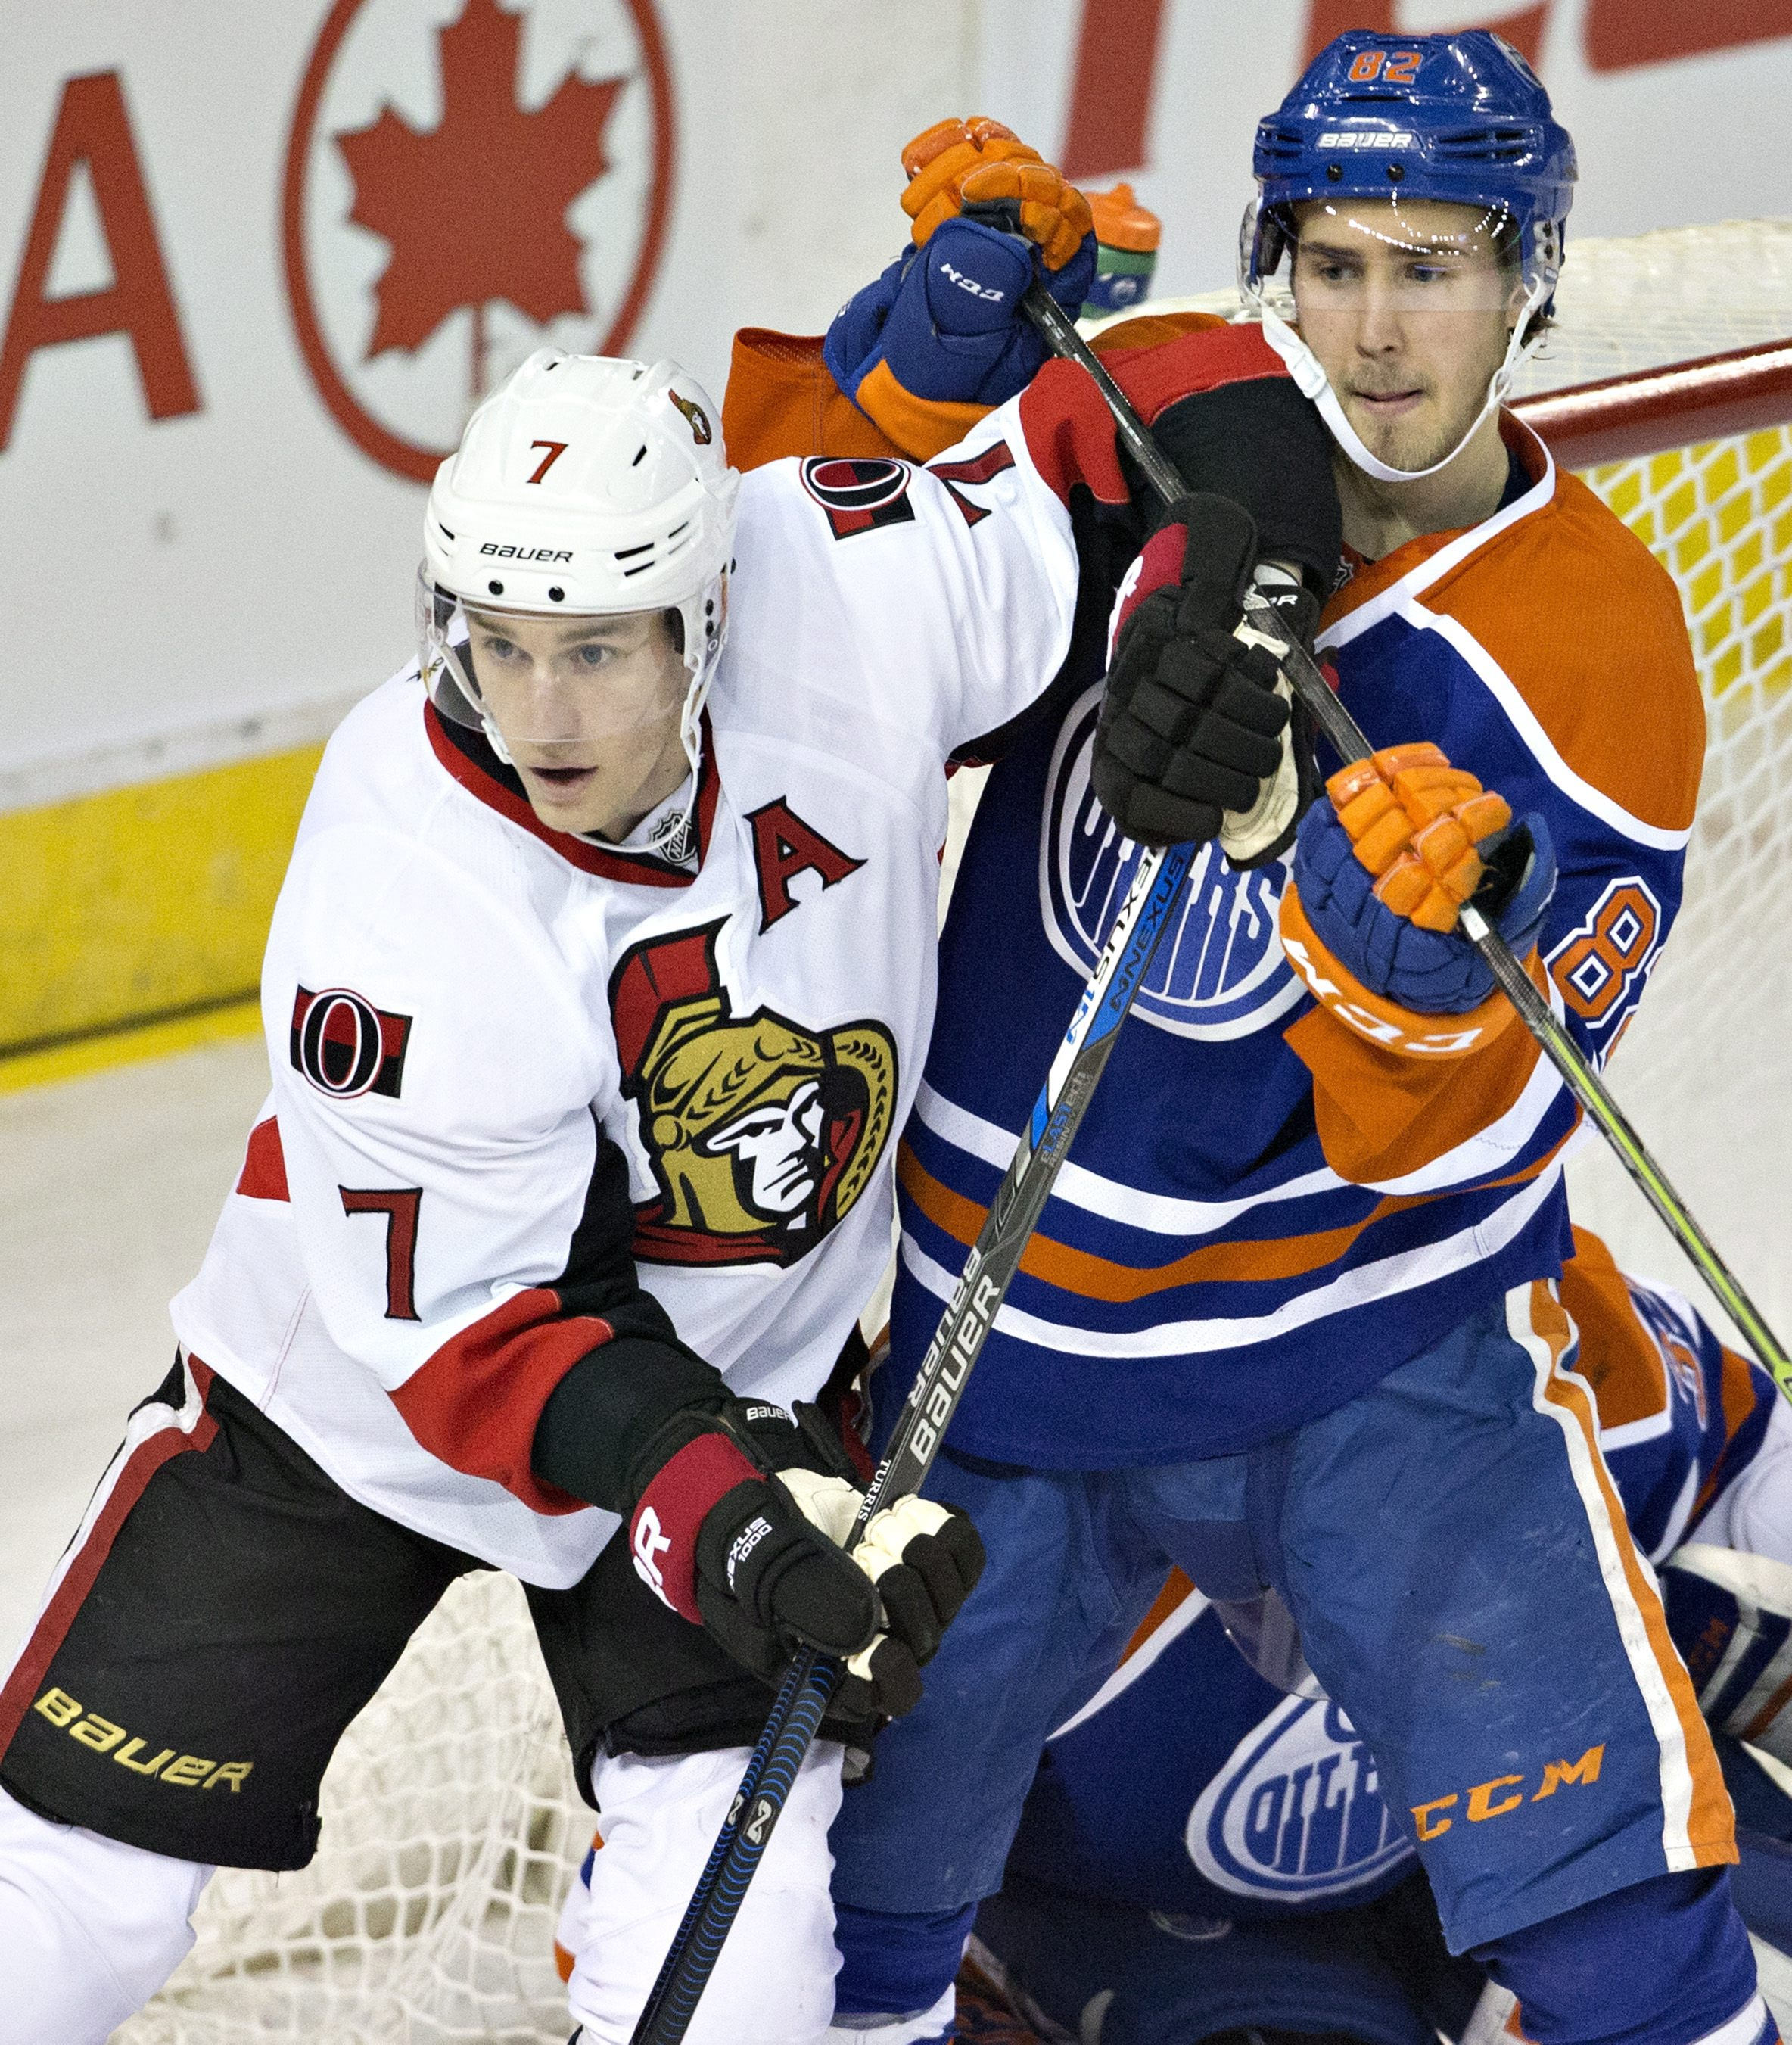 Ottawa Senators' Kyle Turris (7) and Edmonton Oilers' Jordan Oesterle (82) battle in front of the net during second period of an NHL hockey game in Edmonton, Alberta, Tuesday, Feb. 23, 2016. (Jason Franson/The Canadian Press via AP) MANDATORY CREDIT